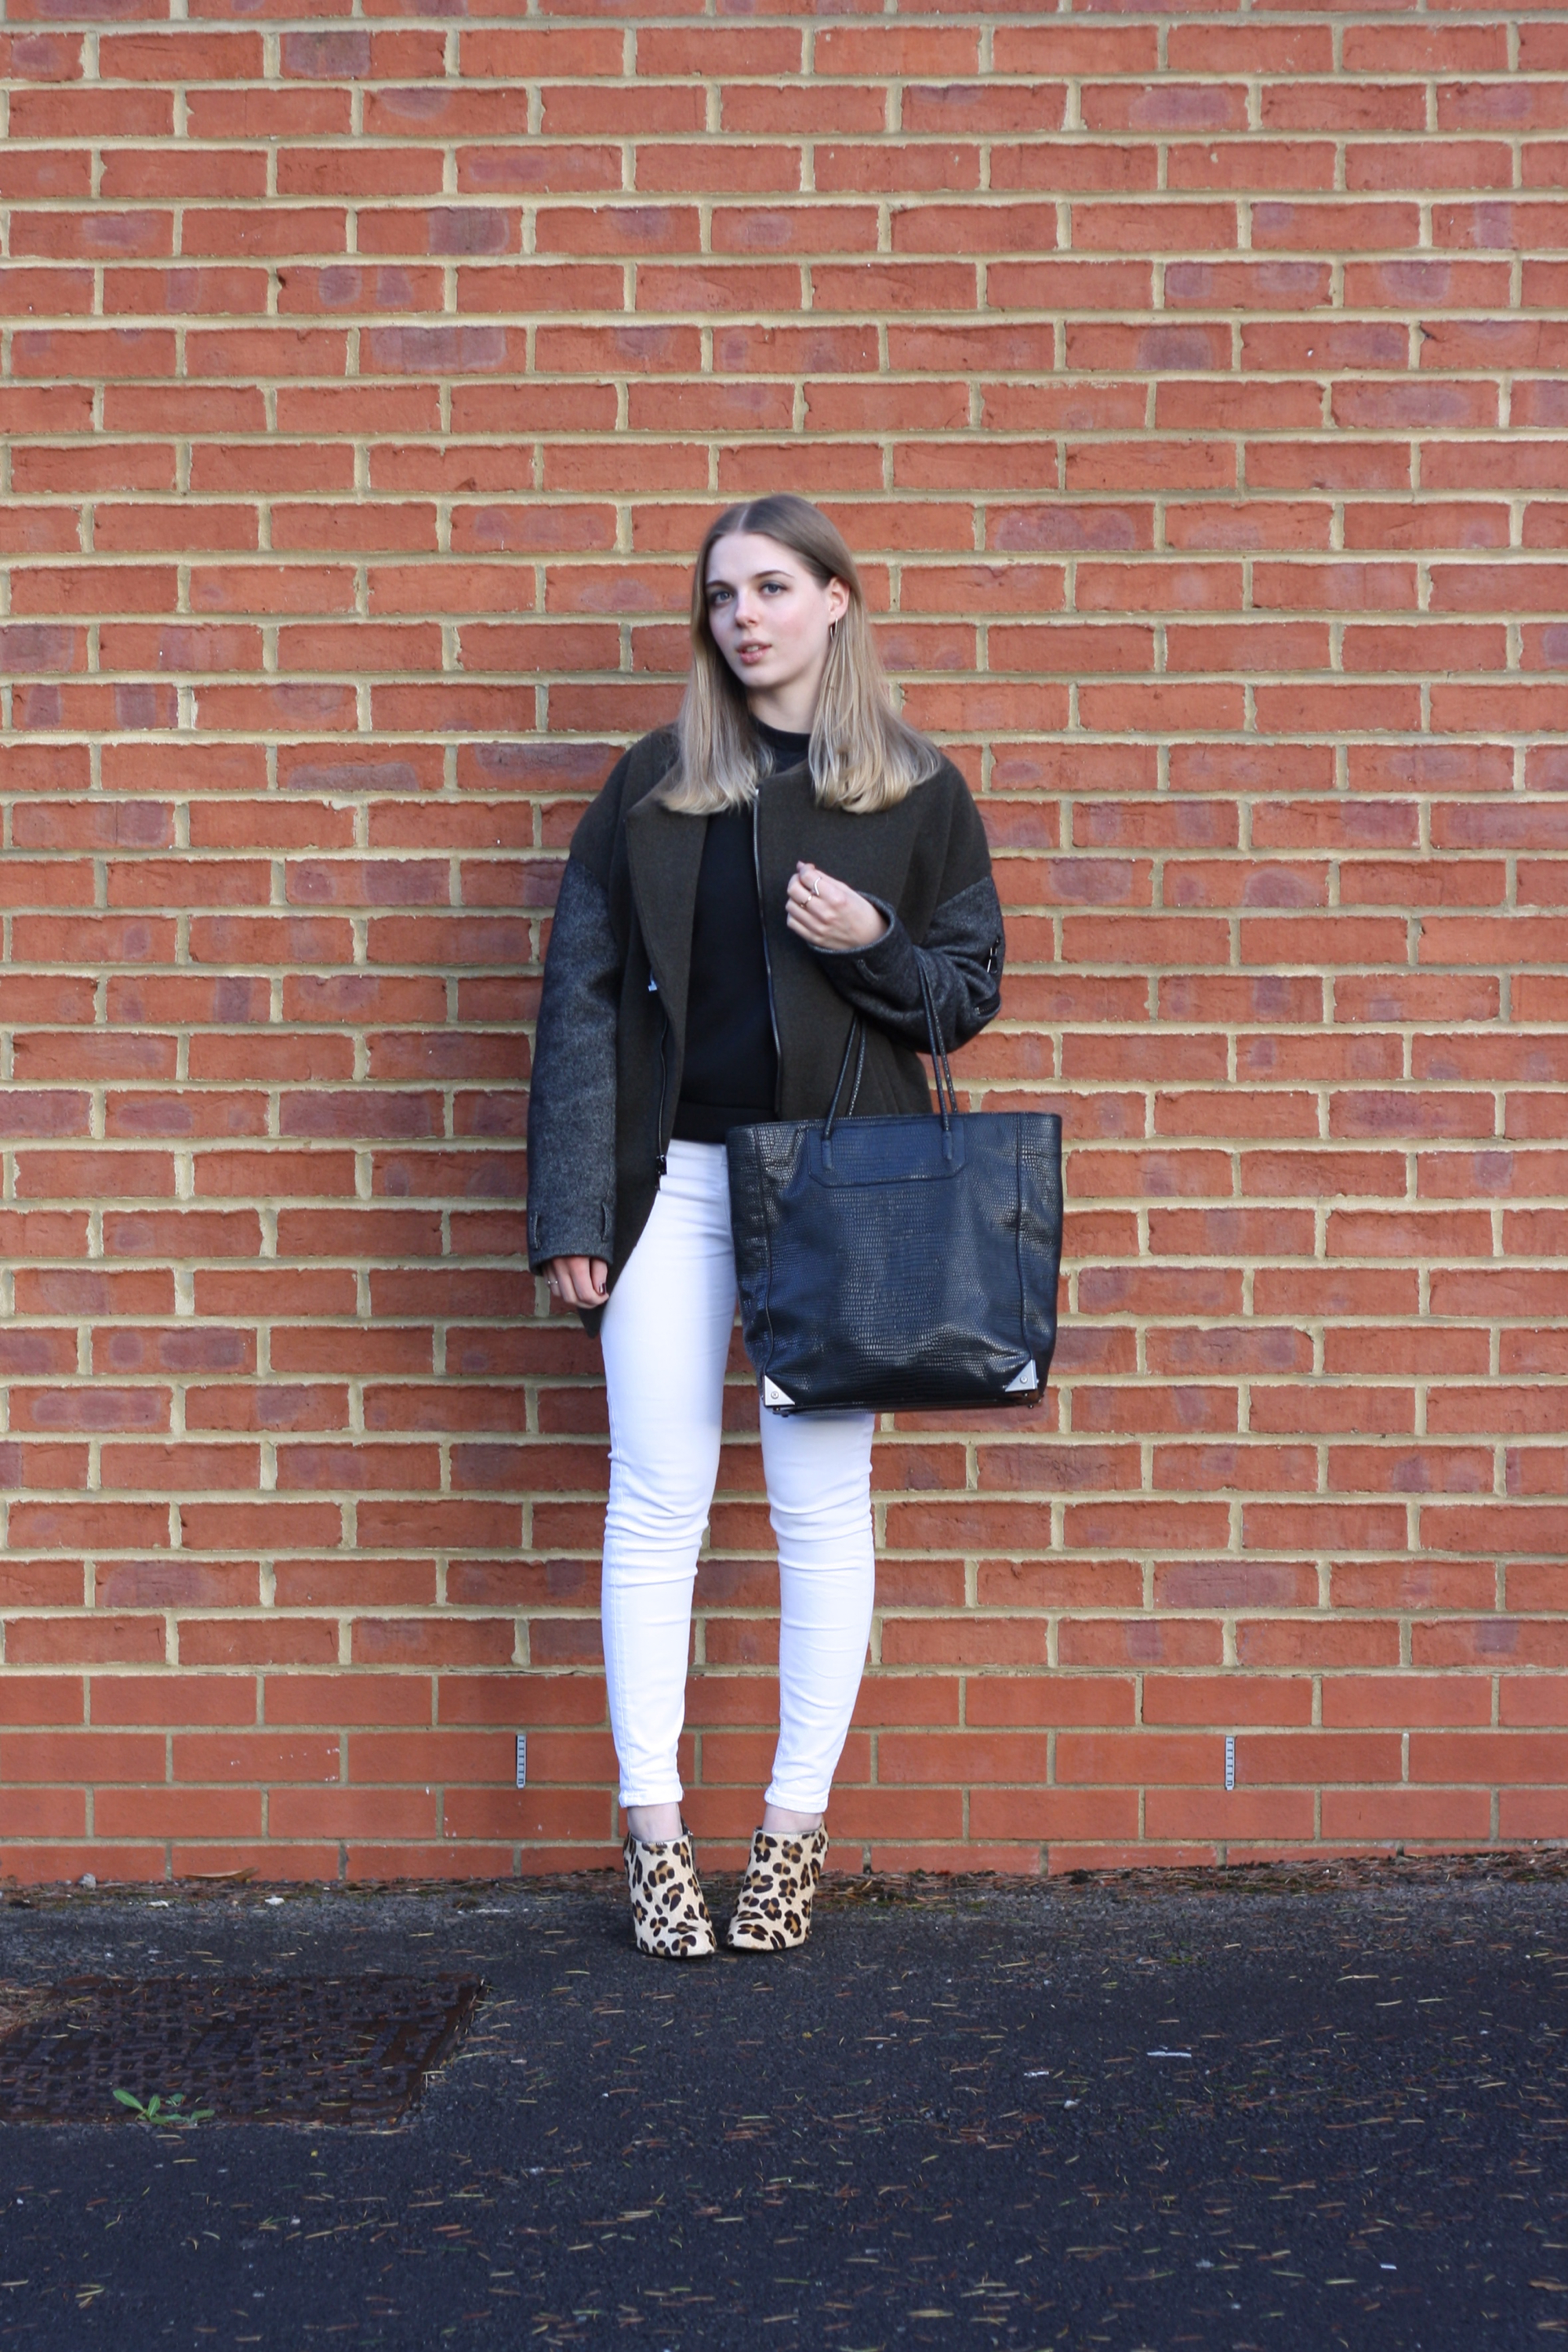 Alexander Wang Prisma tote, Topshop white Jamie jeans and Whistles black neoprene top